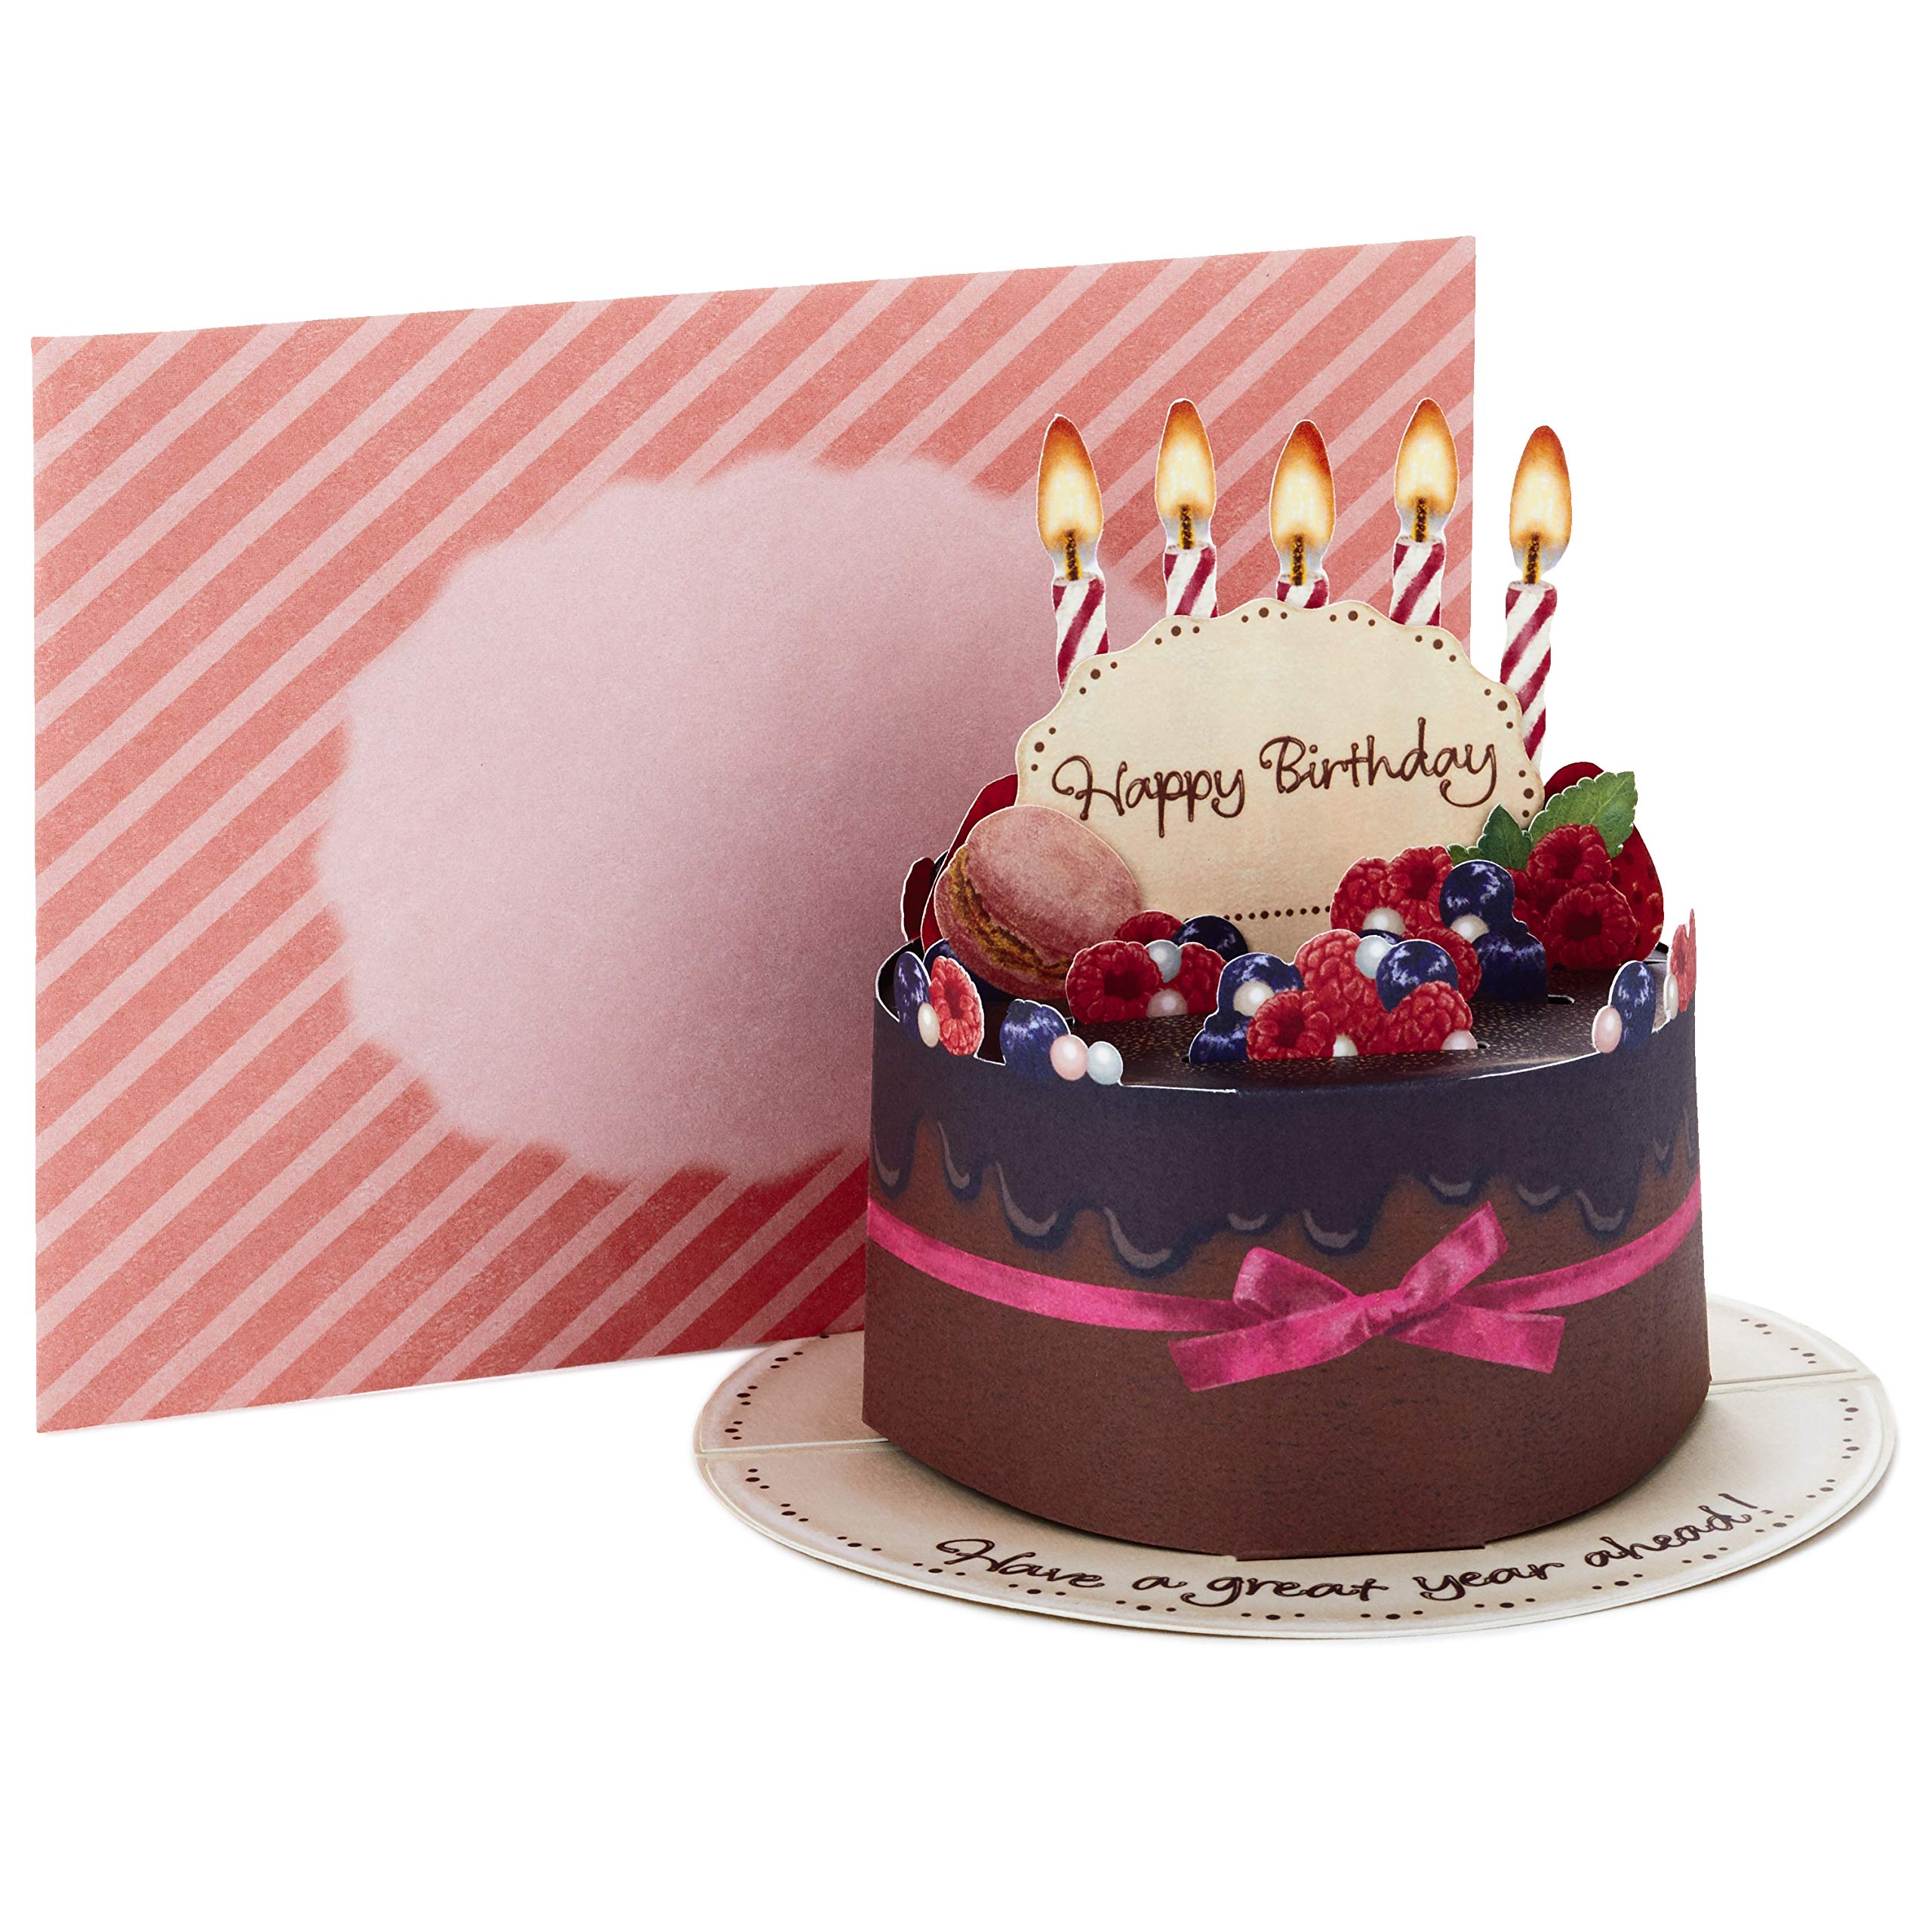 Swell Hallmark Pop Up Birthday Card Chocolate Cake Buy Online In Funny Birthday Cards Online Aboleapandamsfinfo